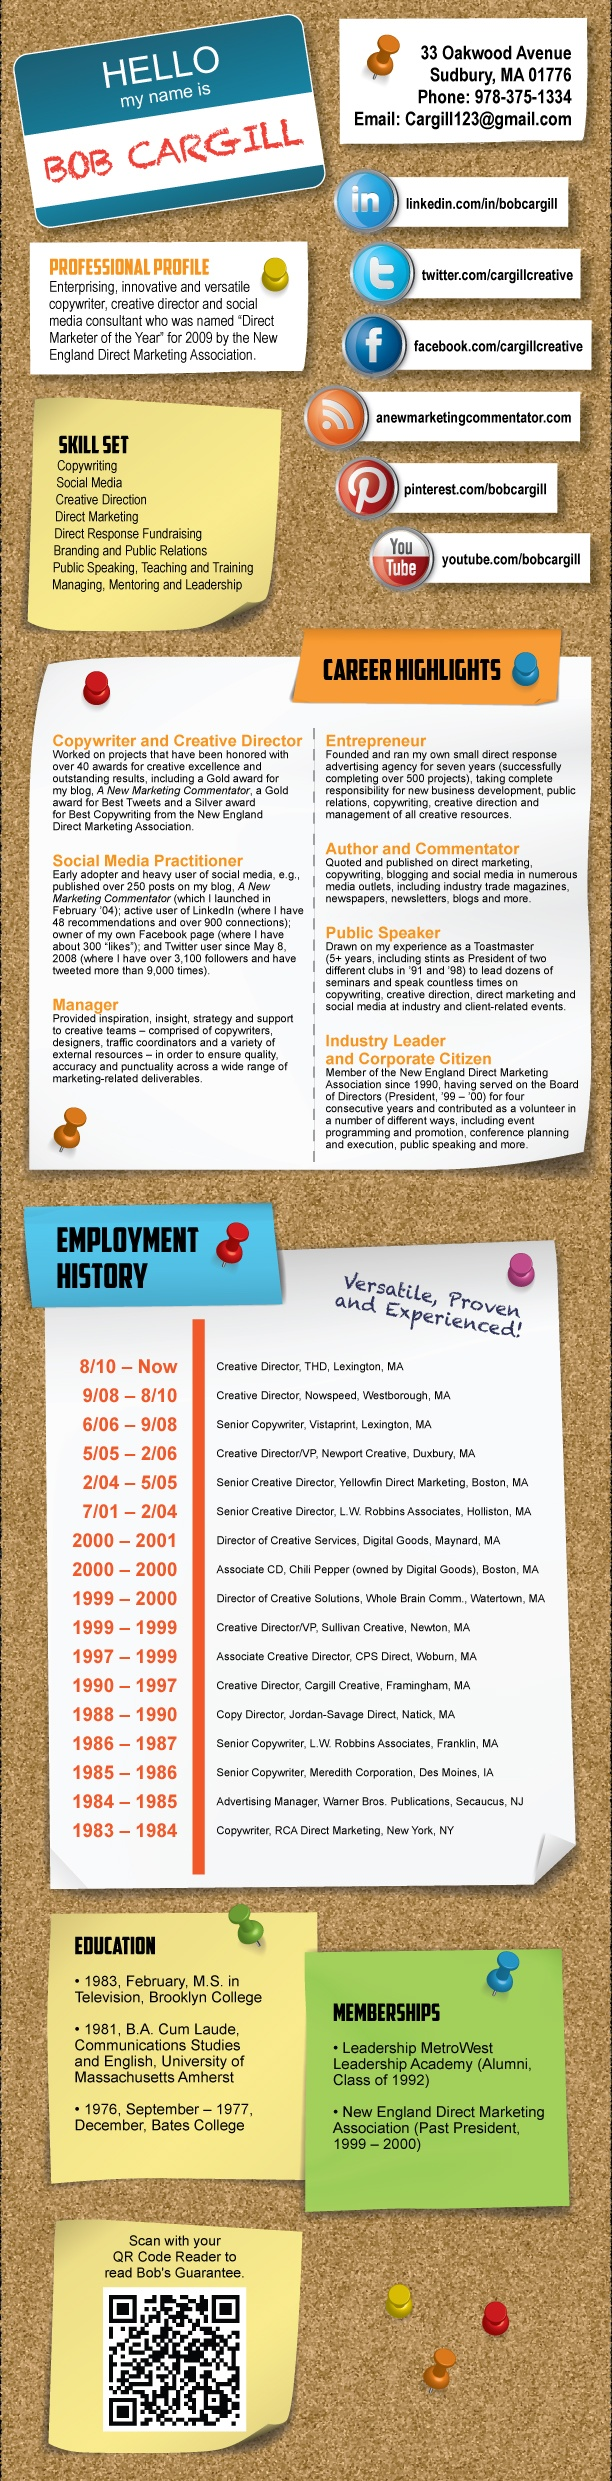 Resume infographic : A second version of my infographic